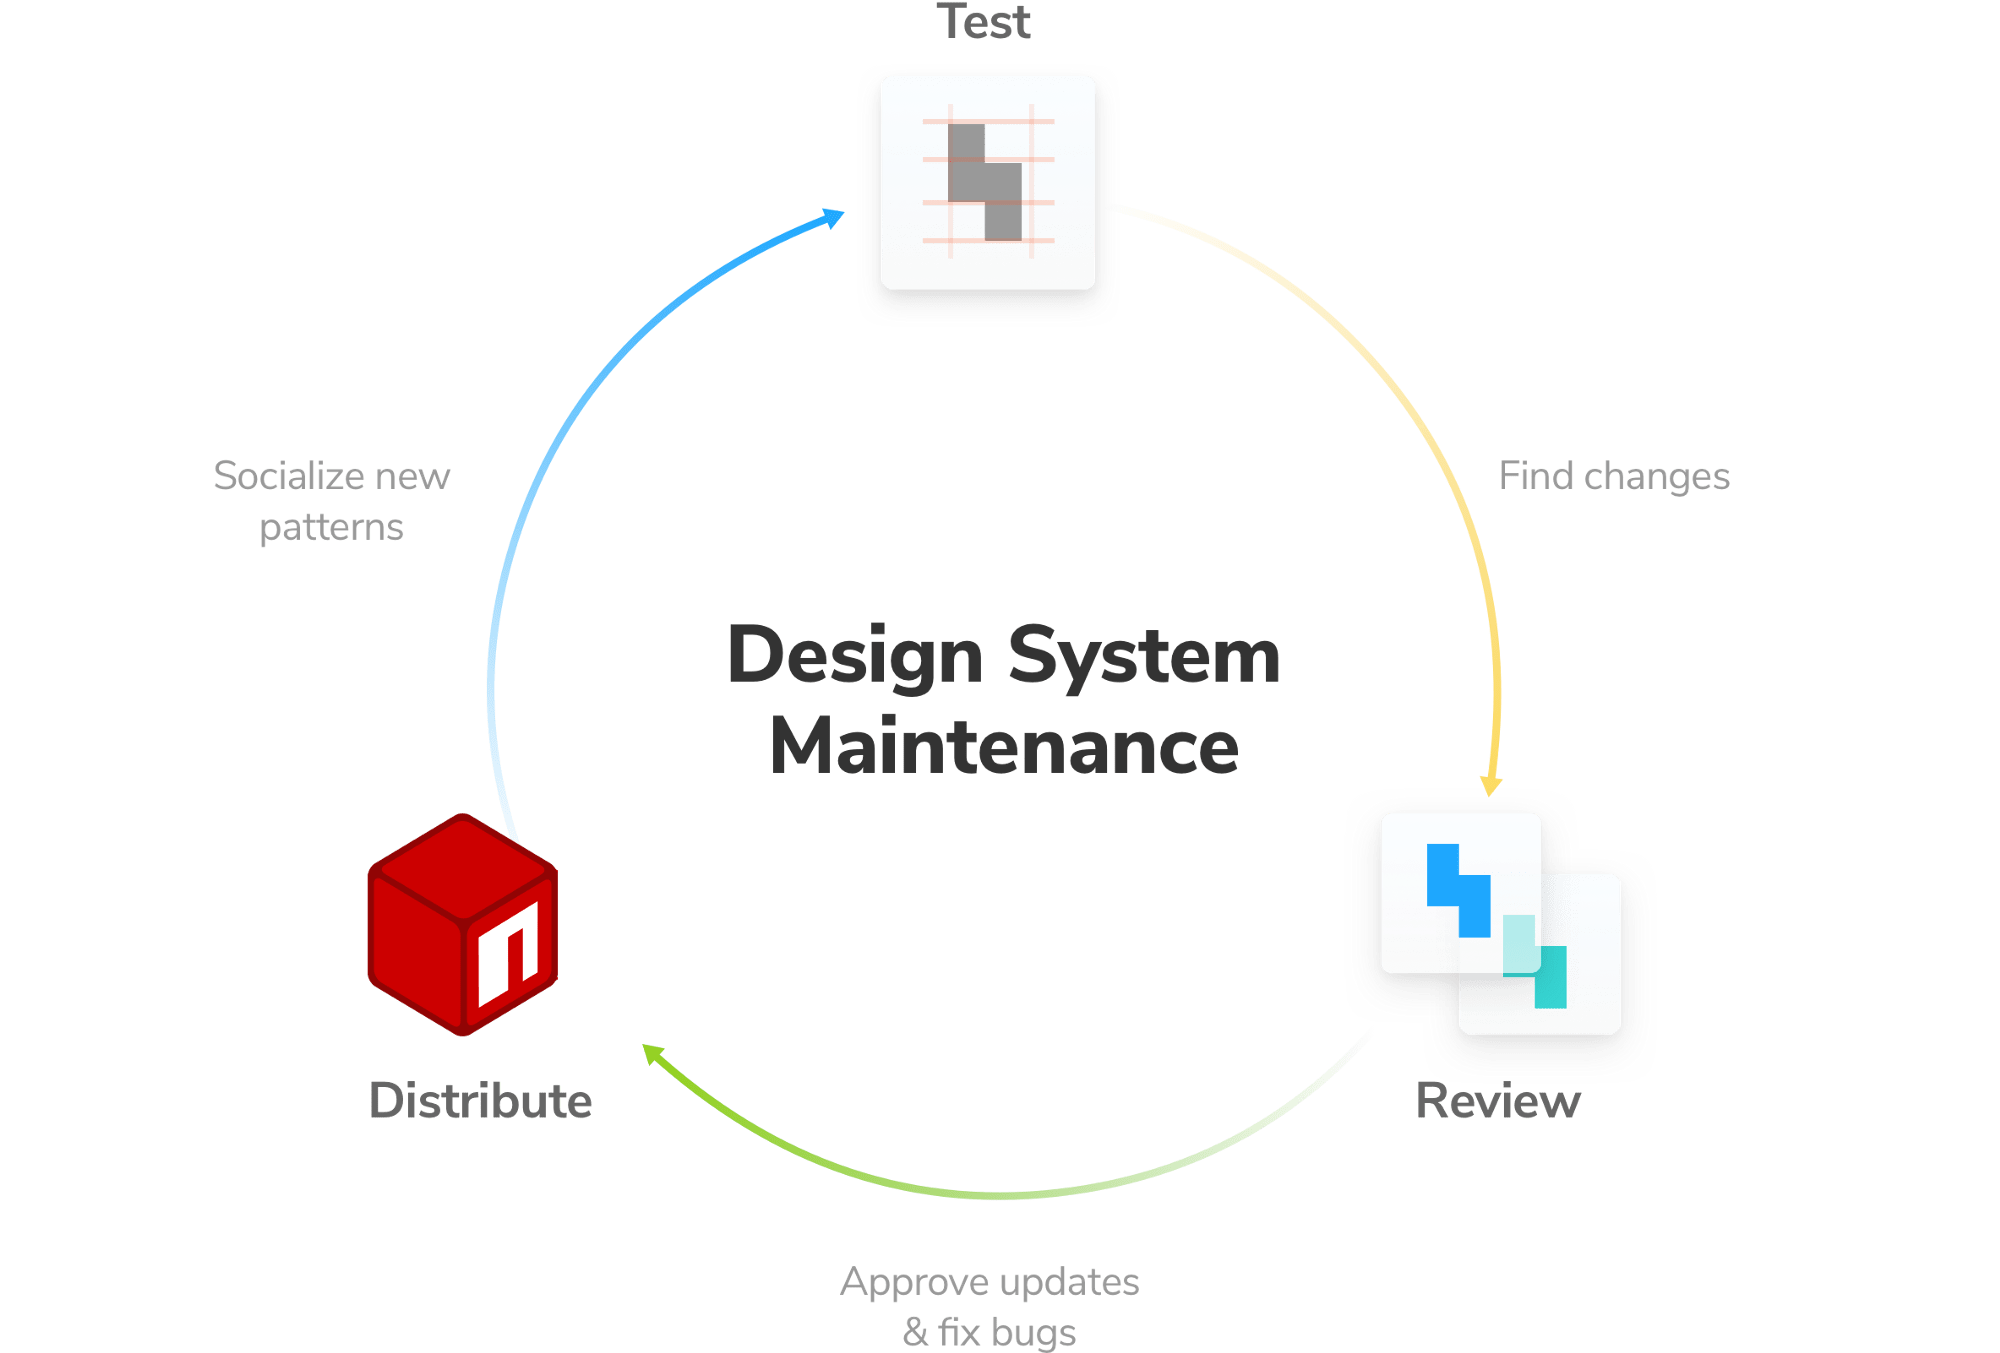 Why design systems are a single point of failure